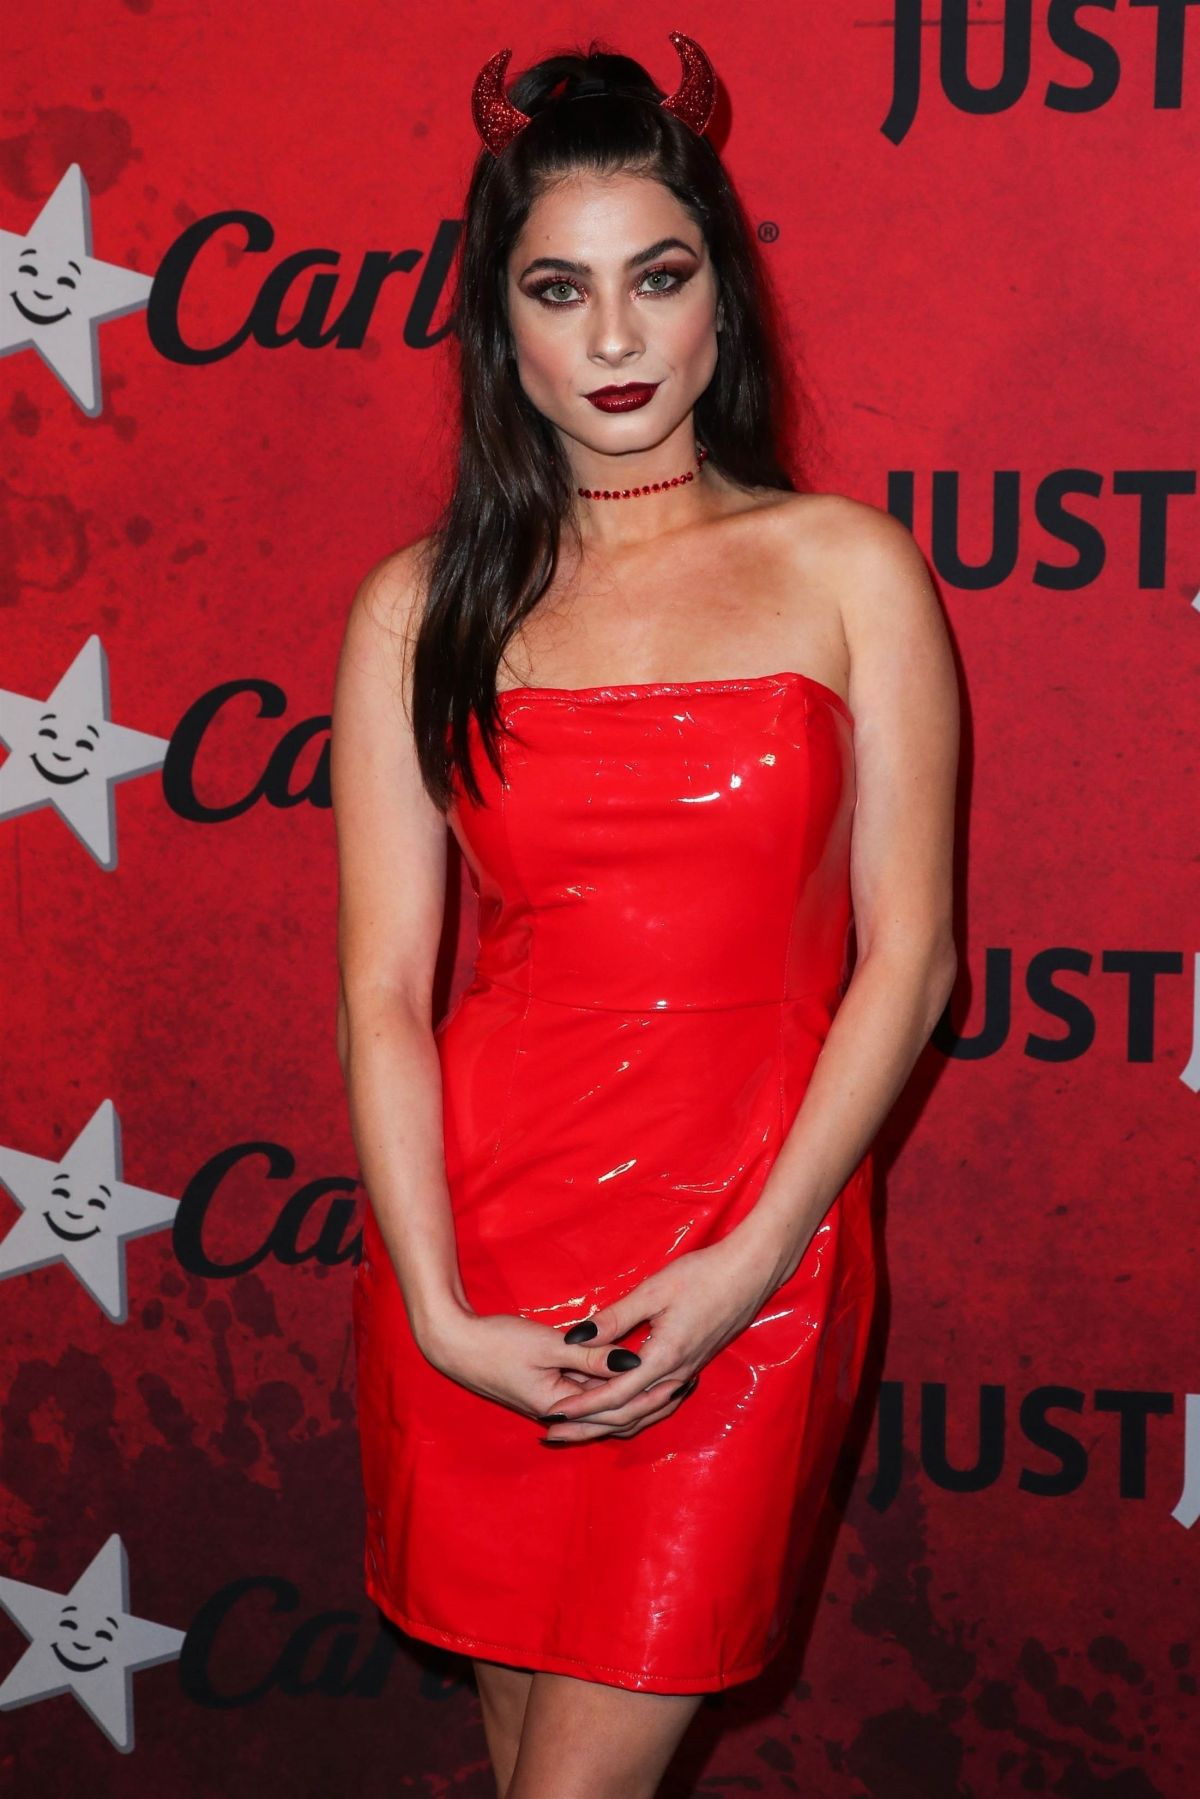 NIKI KOSS at Just Jared Halloween Party in West Hollywood 10